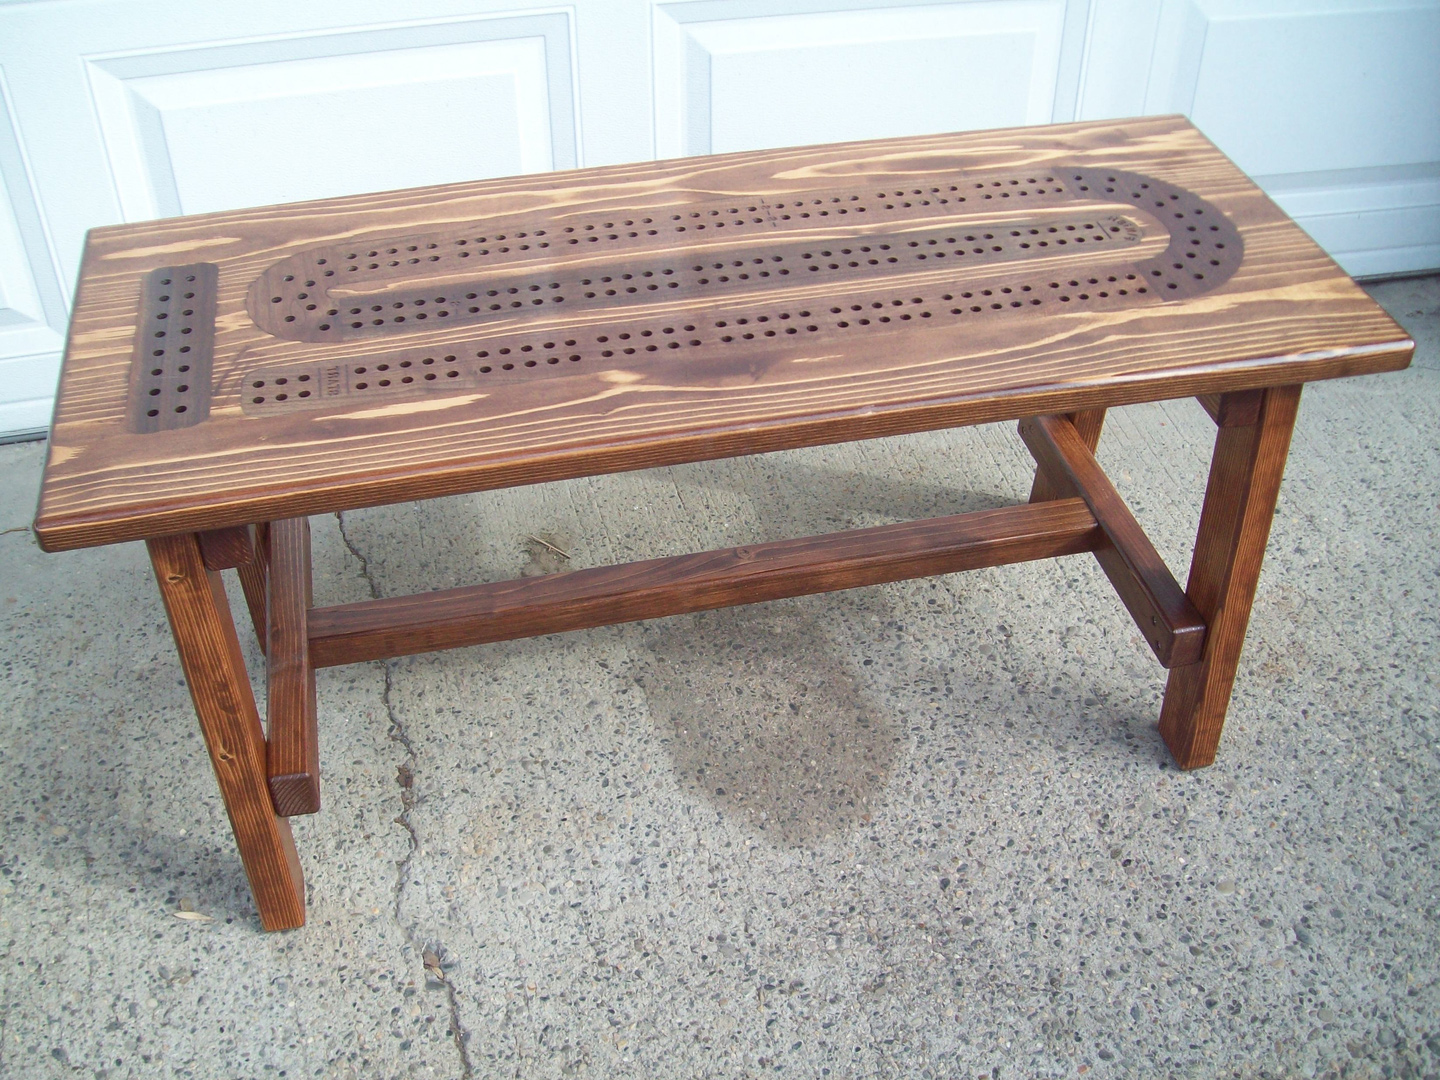 Cribbage Board Coffee Table Plans